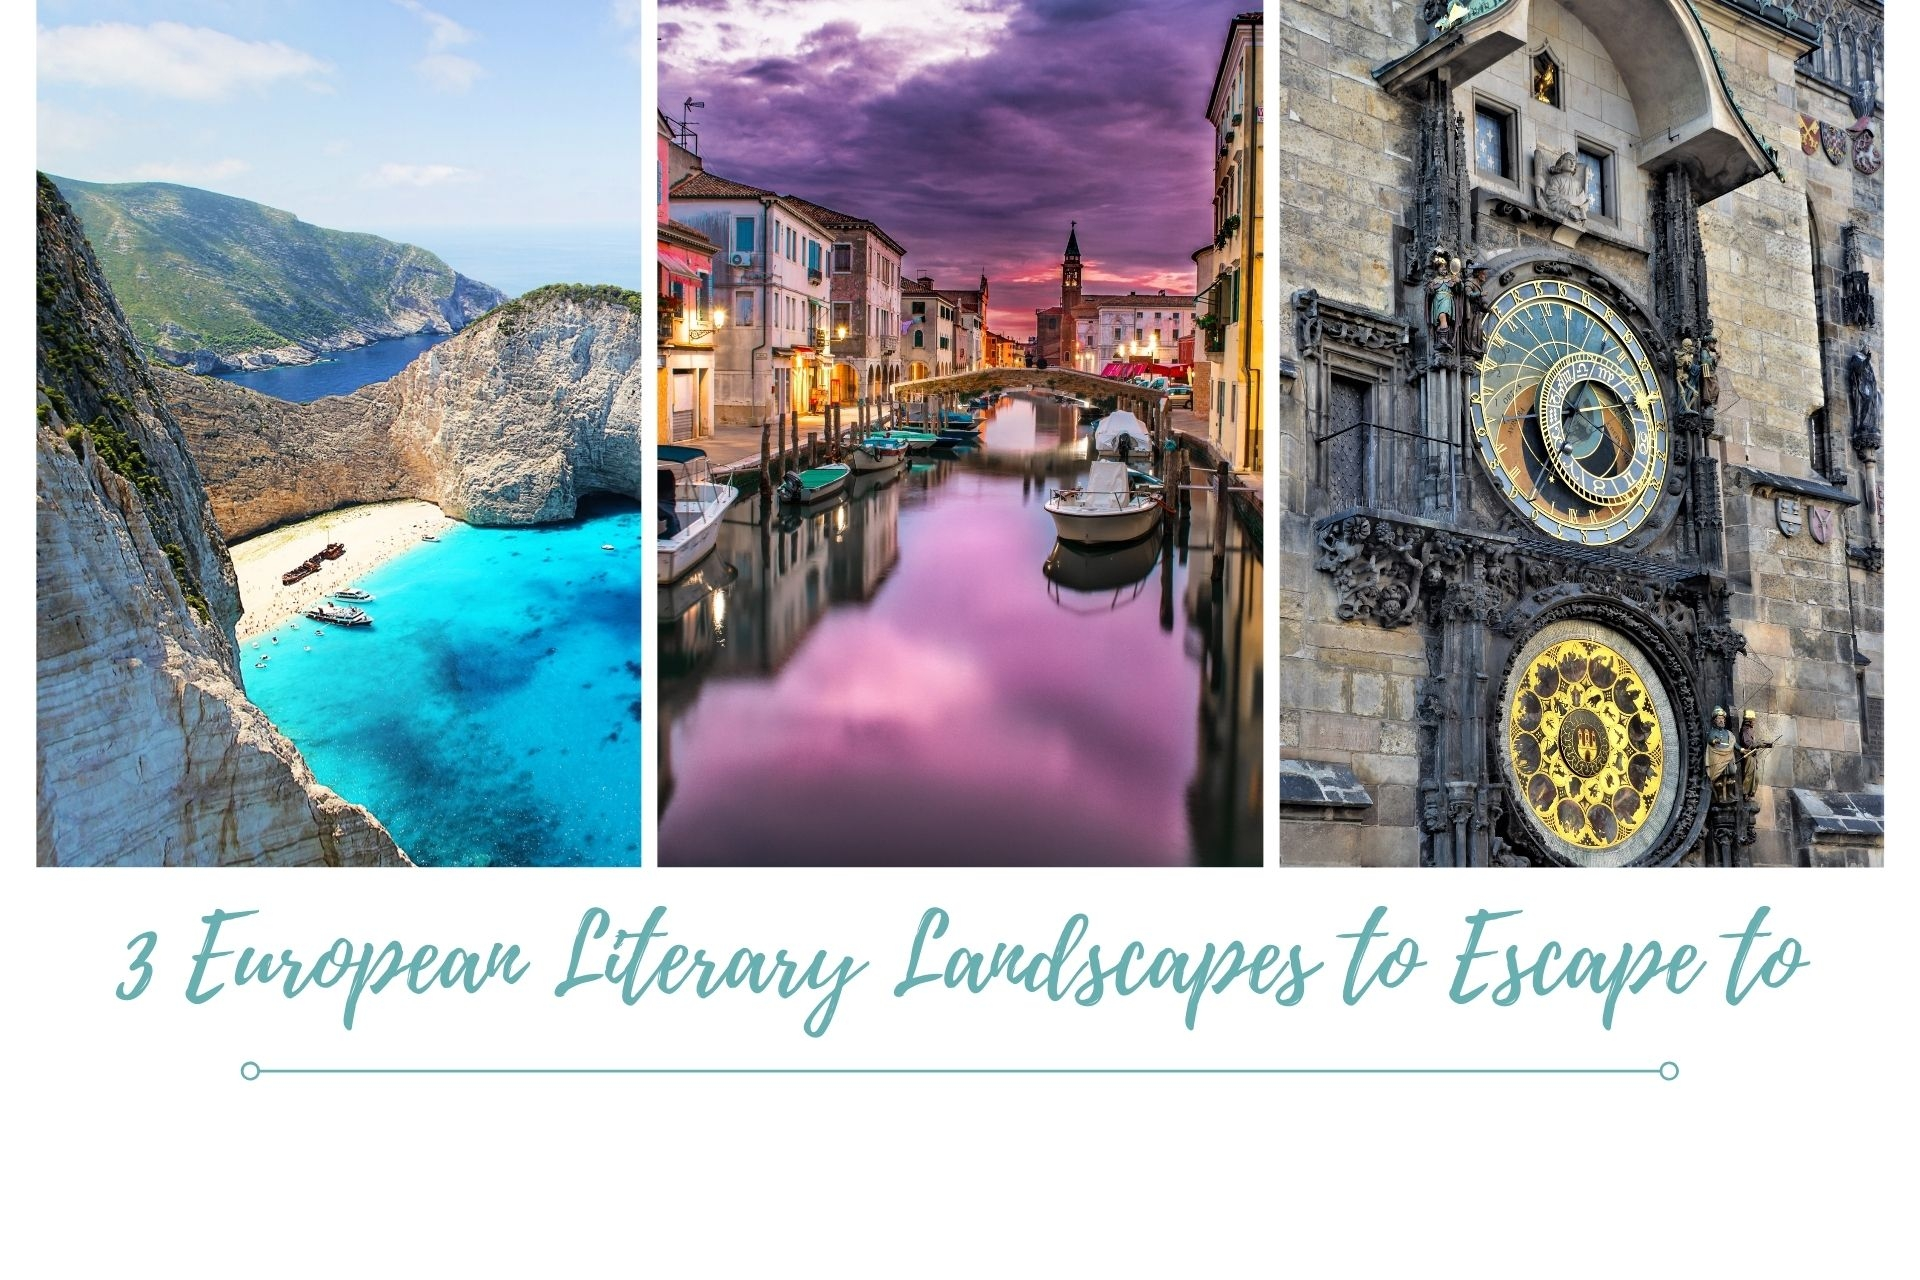 3 European Literary Lands to Escape to.